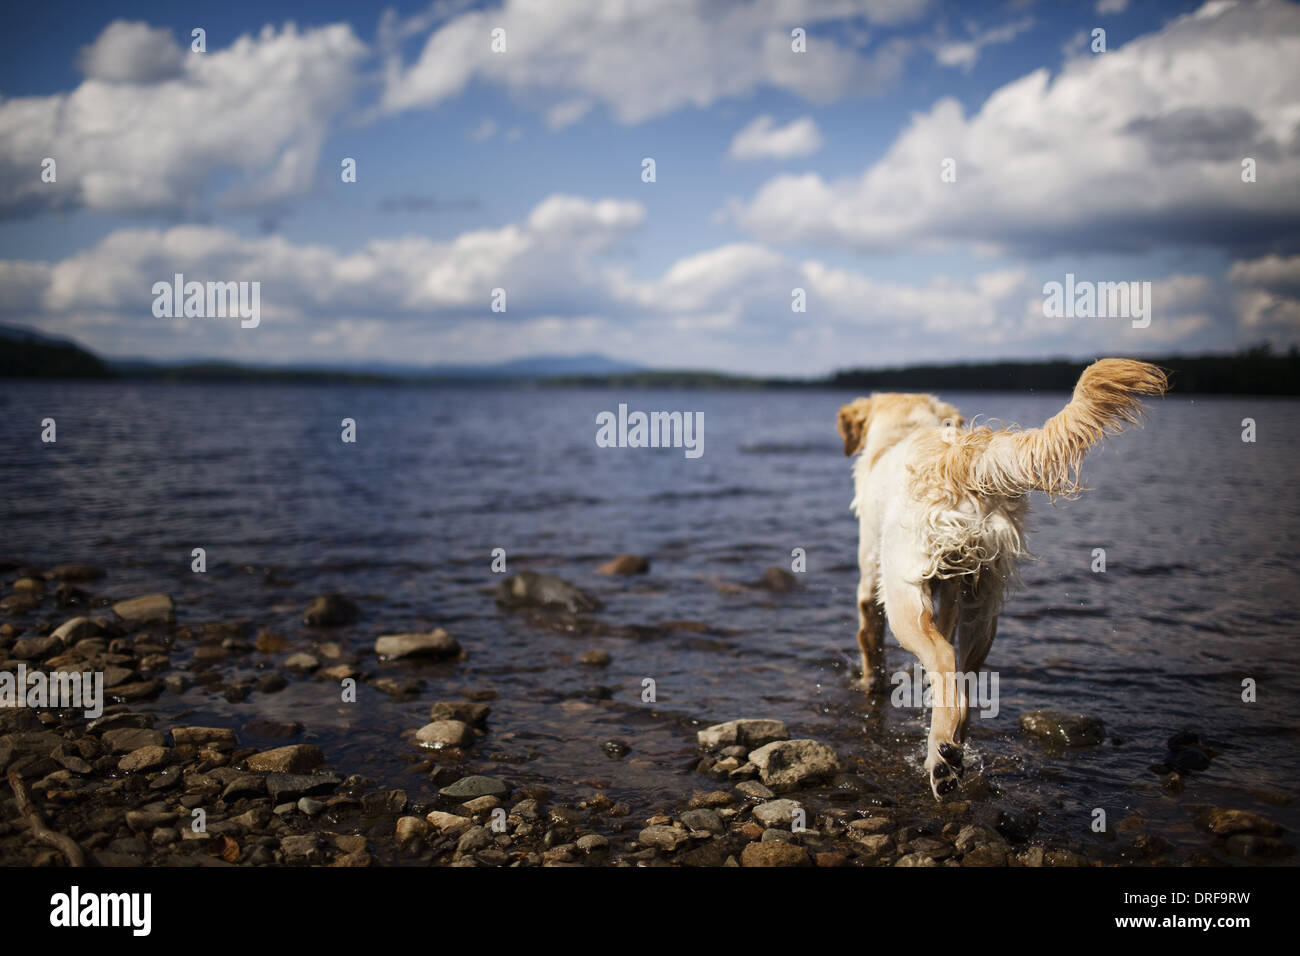 USA wet dog with long hair family pet shaking itself - Stock Image